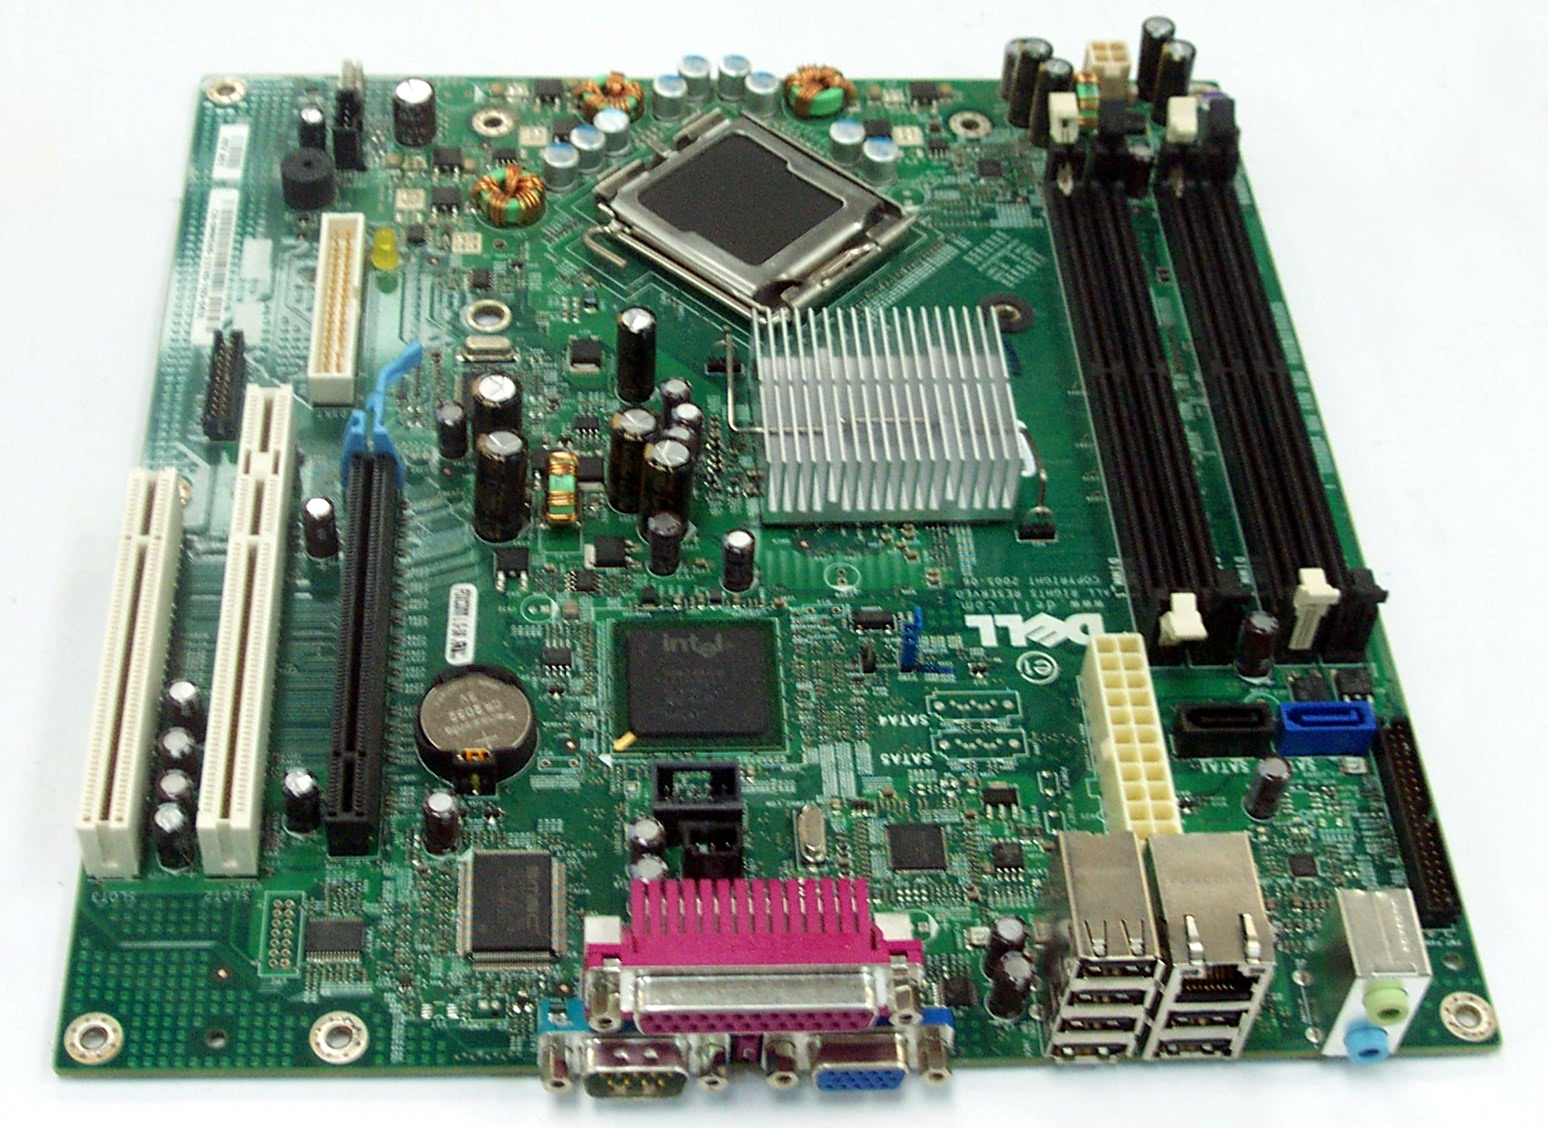 Optiplex 745 video card